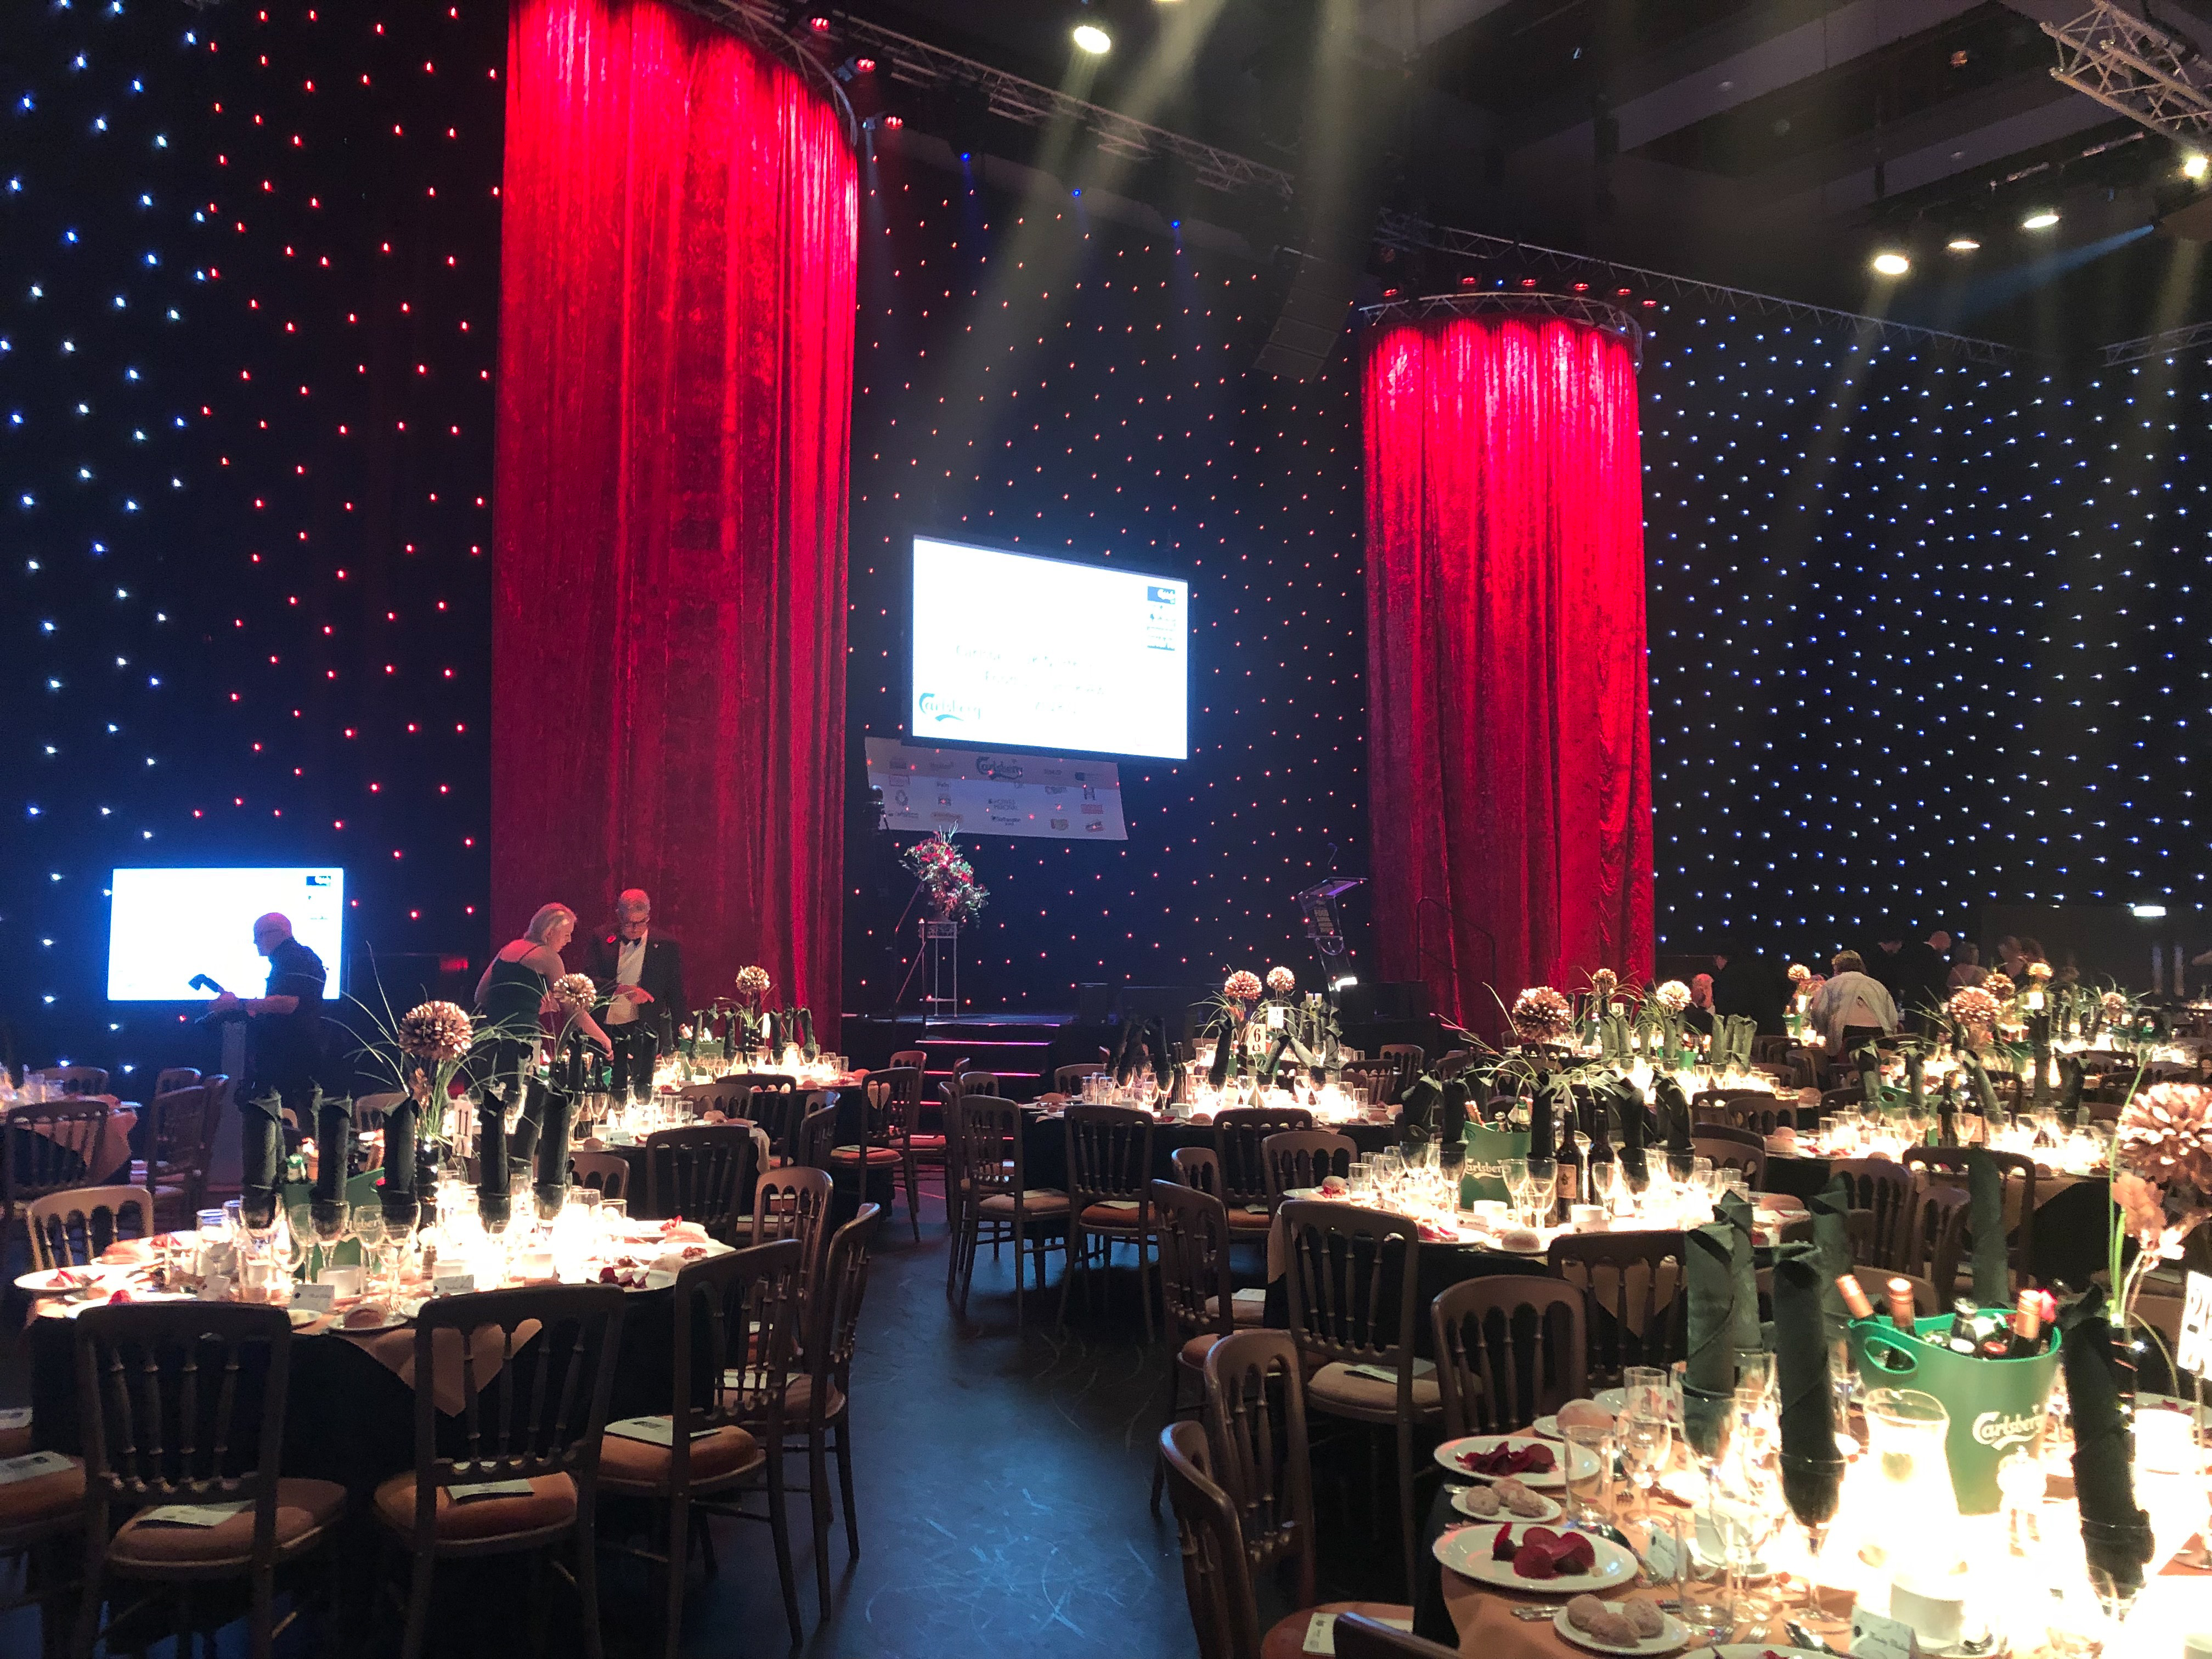 Northamptonshire Food and Drink awards 2018 thebeautytype.com beauty and lifestyle blog